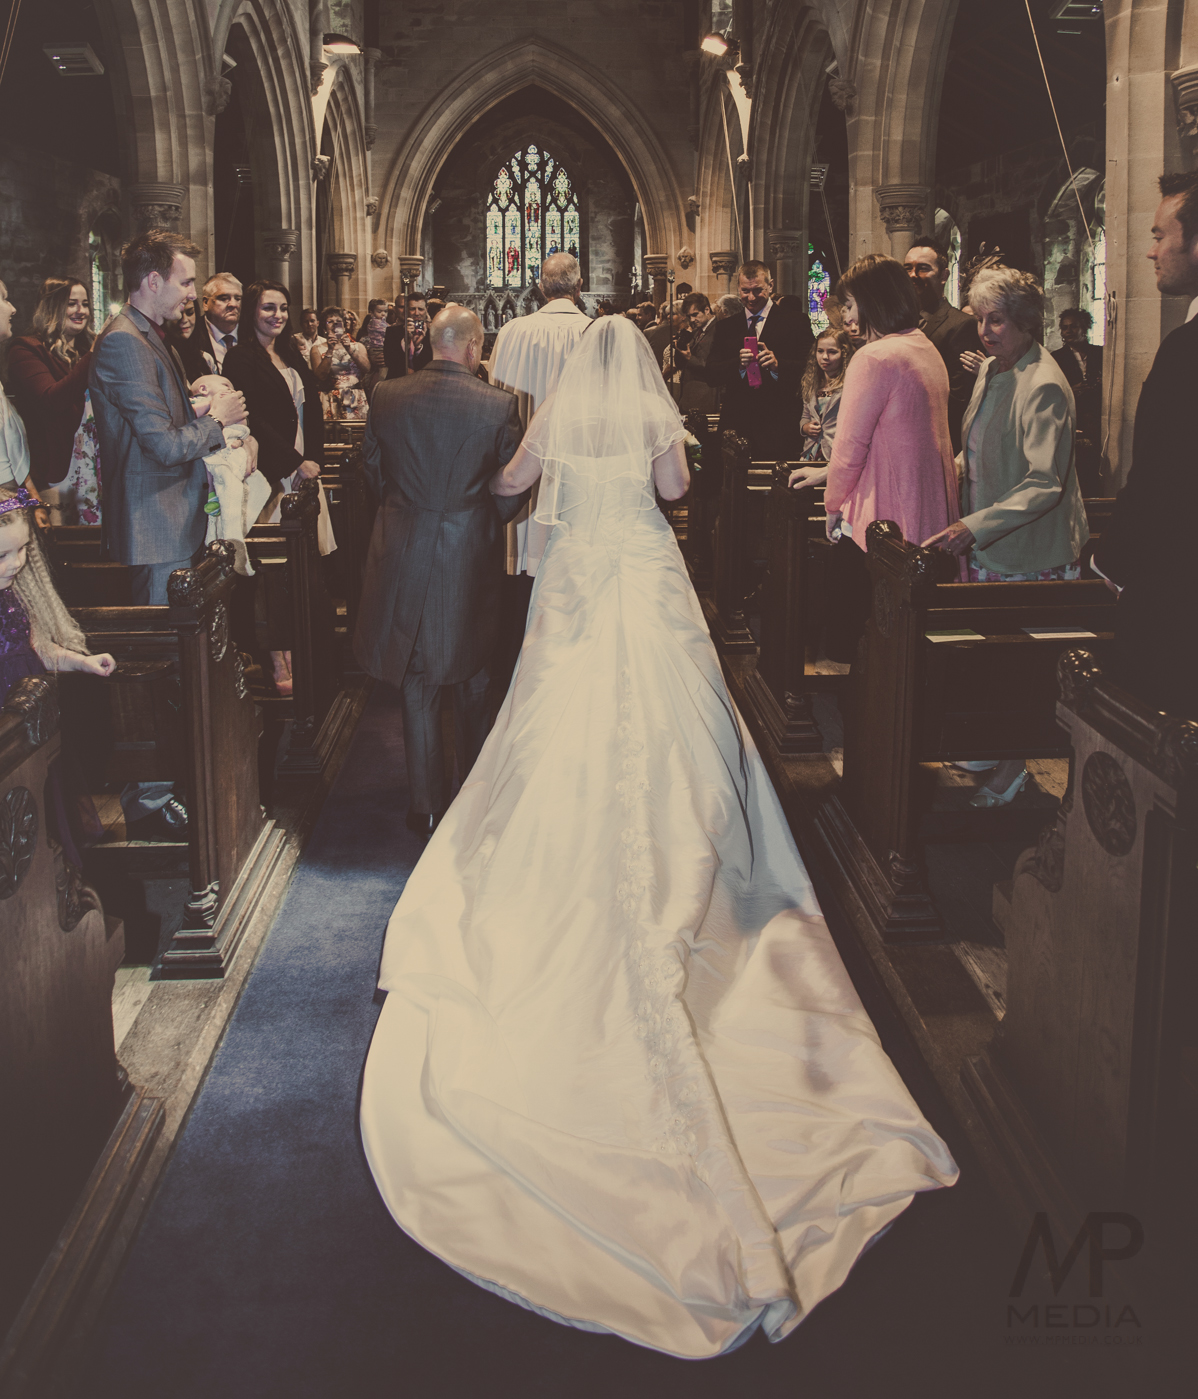 201 - Chris and Natalies Wedding (MAIN) - DO NOT SHARE THIS IMAGES ONLINE -0211.JPG